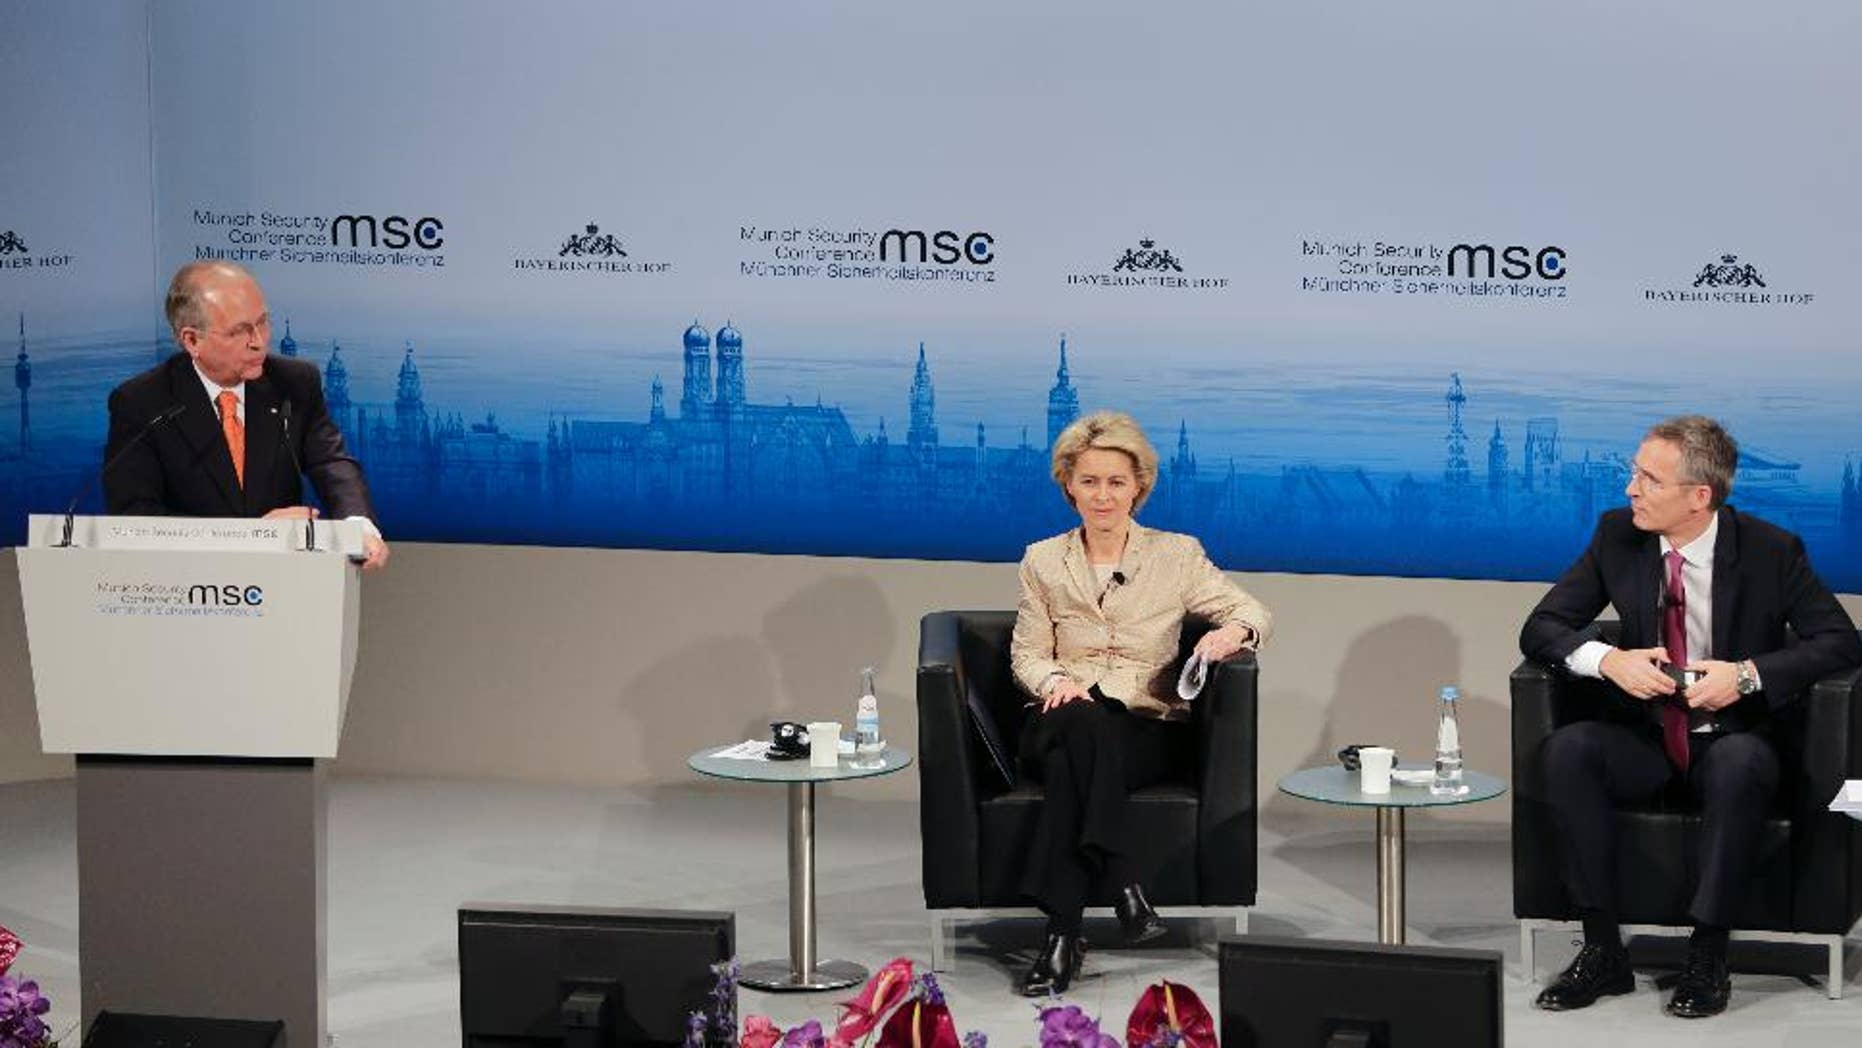 Munich Security Conference Chairman Wolfgang Ischinger, left, welcomes German Defense Minister Ursula von der Leyen, center,  and NATO Secretary General Jens Stoltenberg during his opening speech at the 51. Security Conference in Munich, Germany, Friday, Feb. 6, 2015. The conference on security policy takes place from Feb. 6, 2015  to Feb. 8, 2015. (AP Photo/Matthias Schrader)